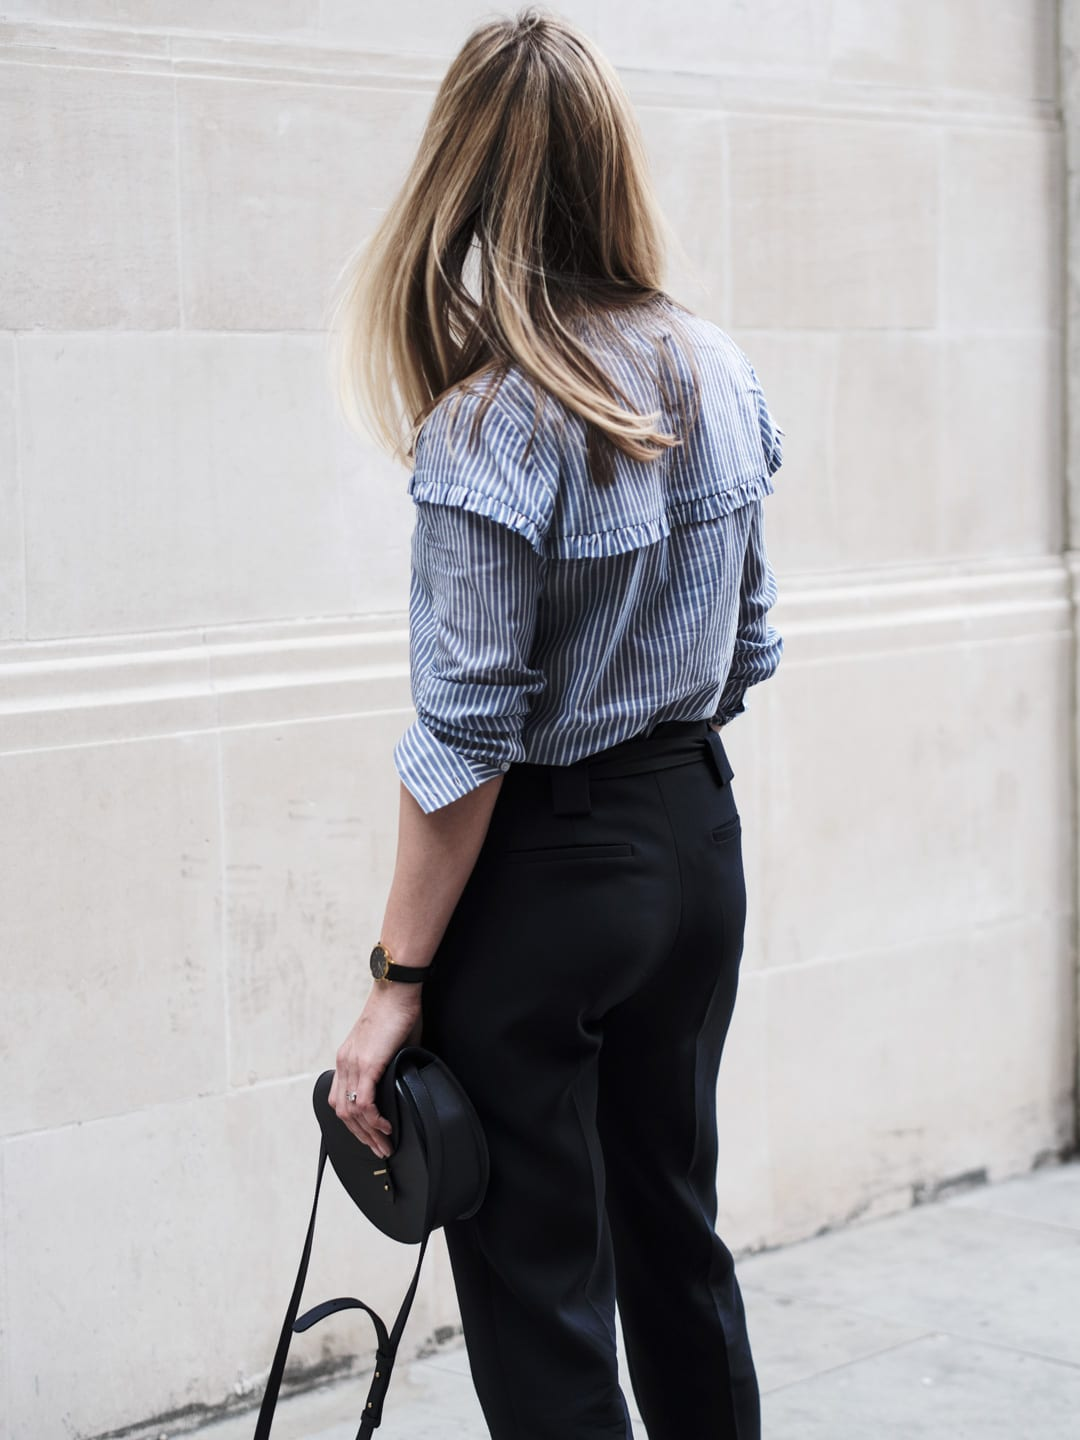 The Frill of It | Second Female Blue Frilled Blouse, Topshop MA-1 Navy Bomber Jacket, ME+EM Navy Trousers, Converse Chuck Taylors & PB 0110 Shoulder Bag